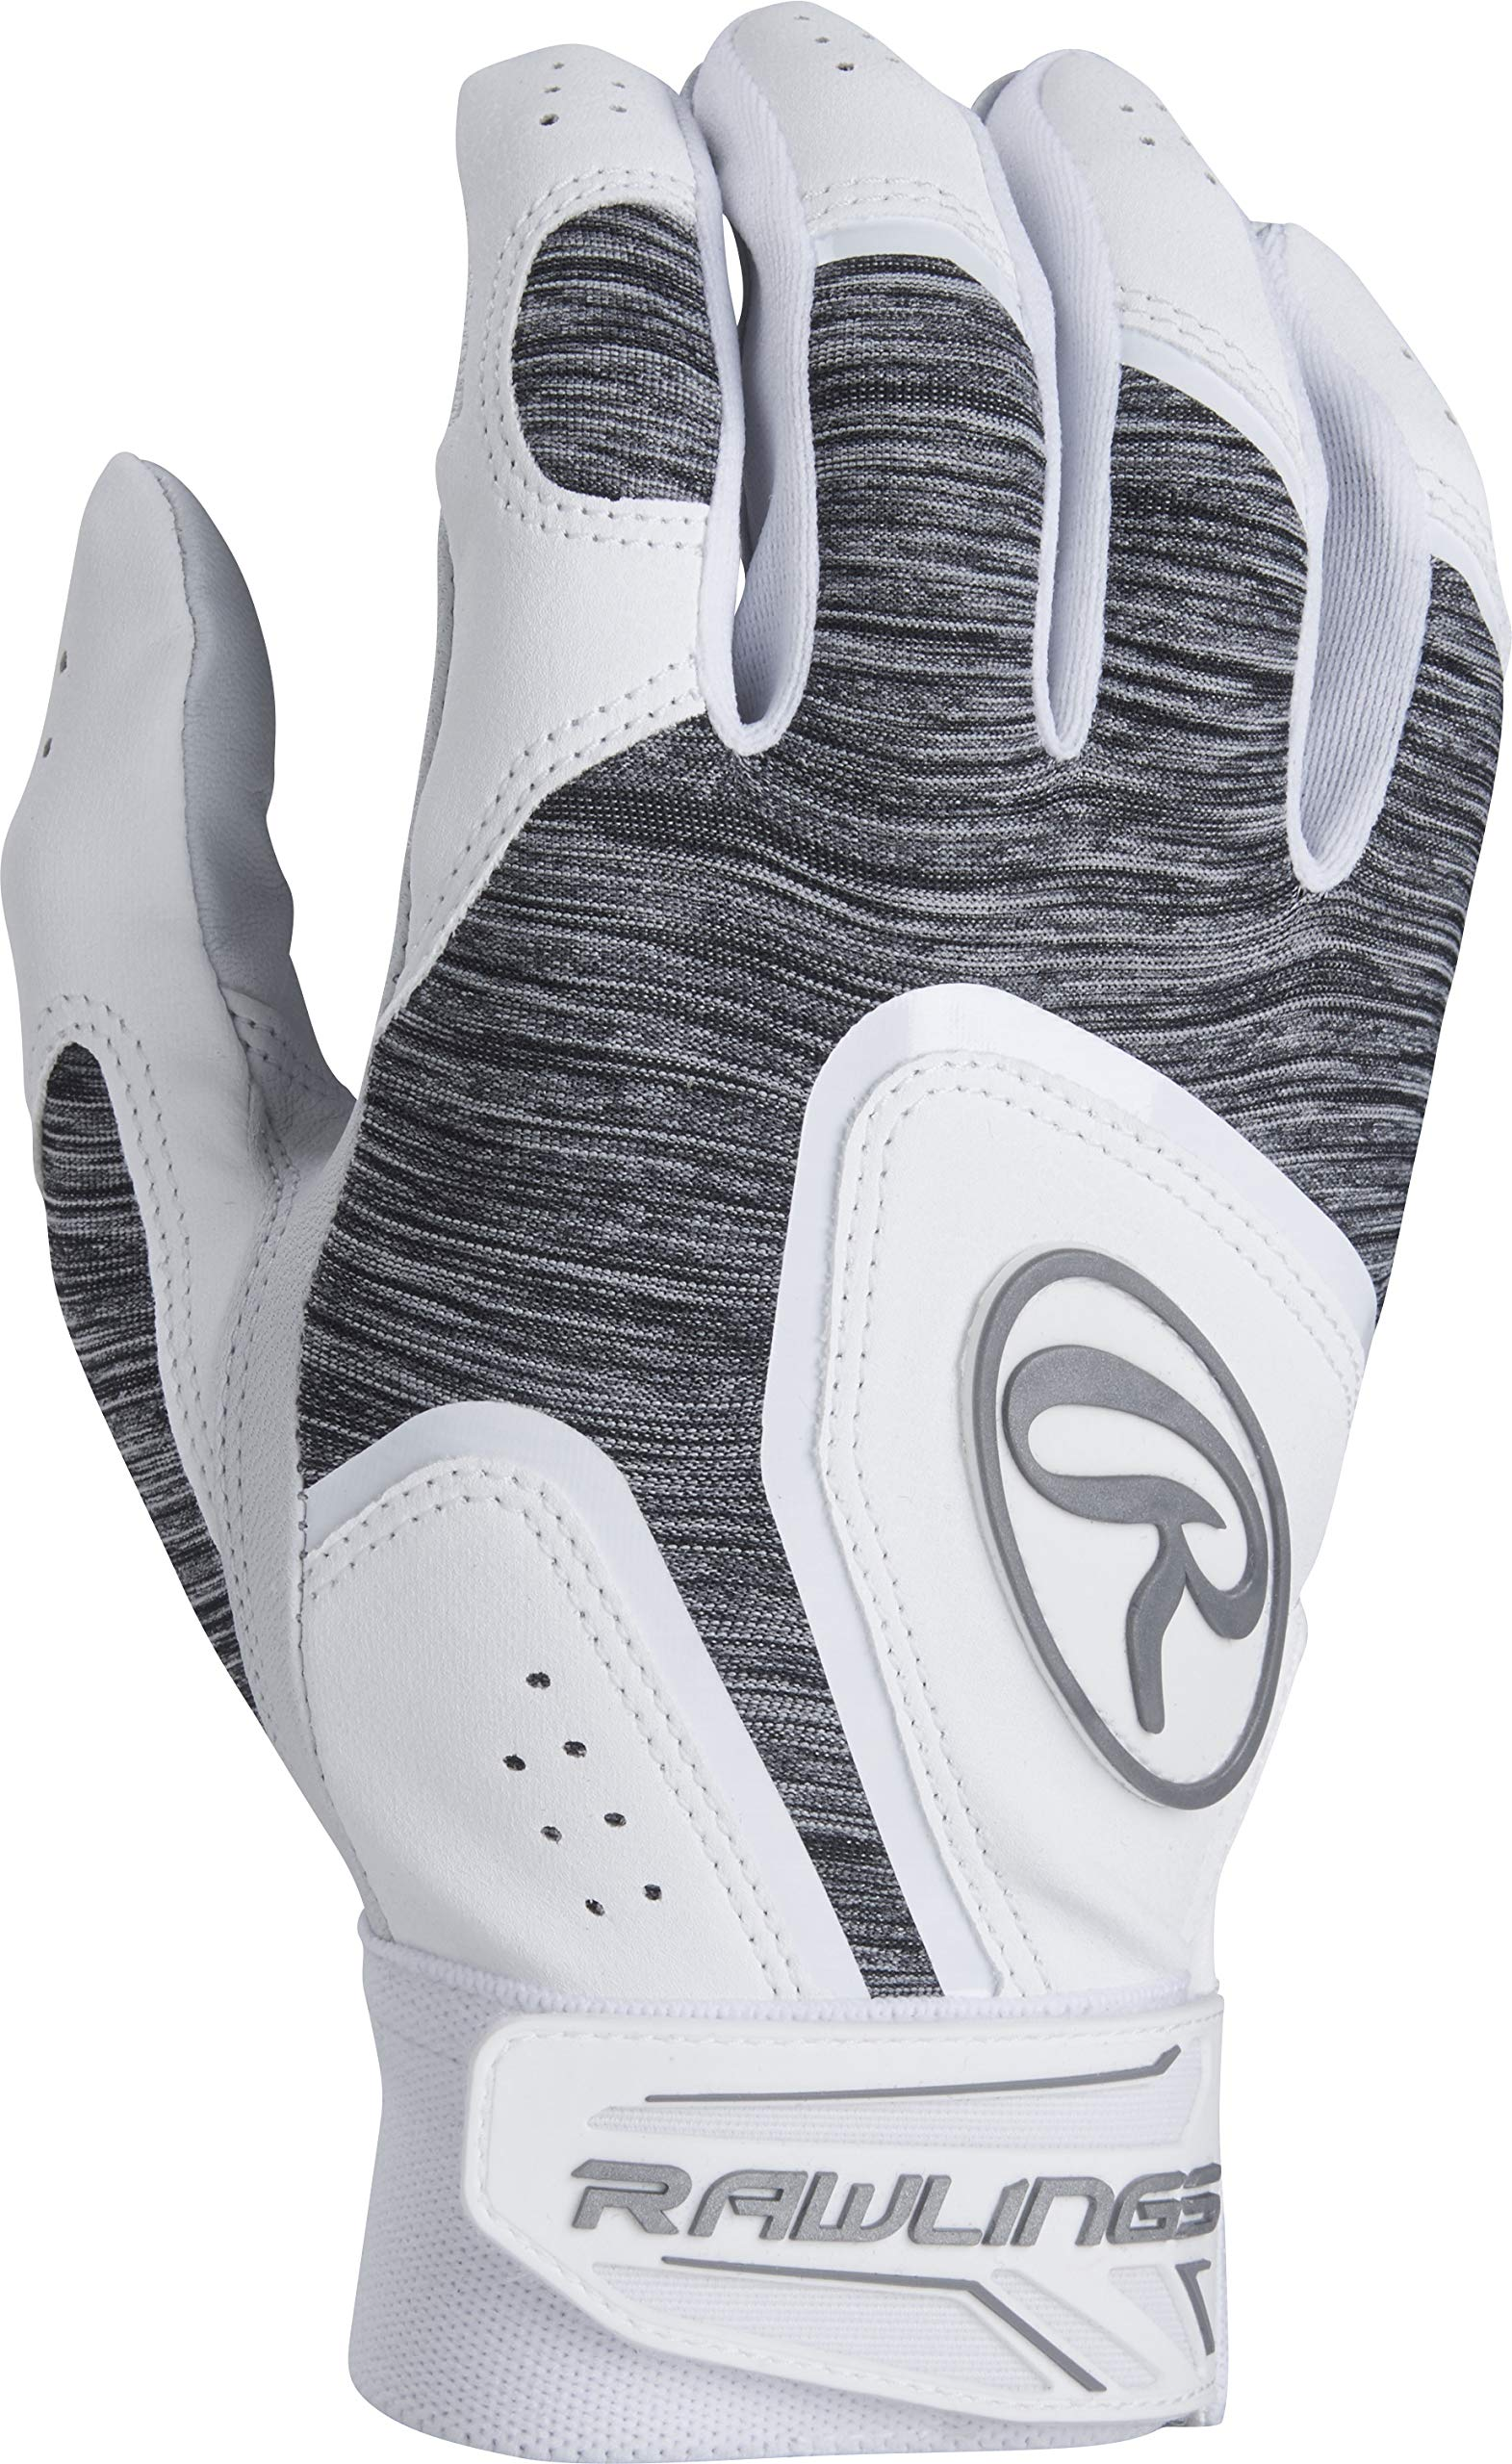 Rawlings 5150WBG-W-90 Rawlngs 5150 Batting Gloves, White by Rawlings